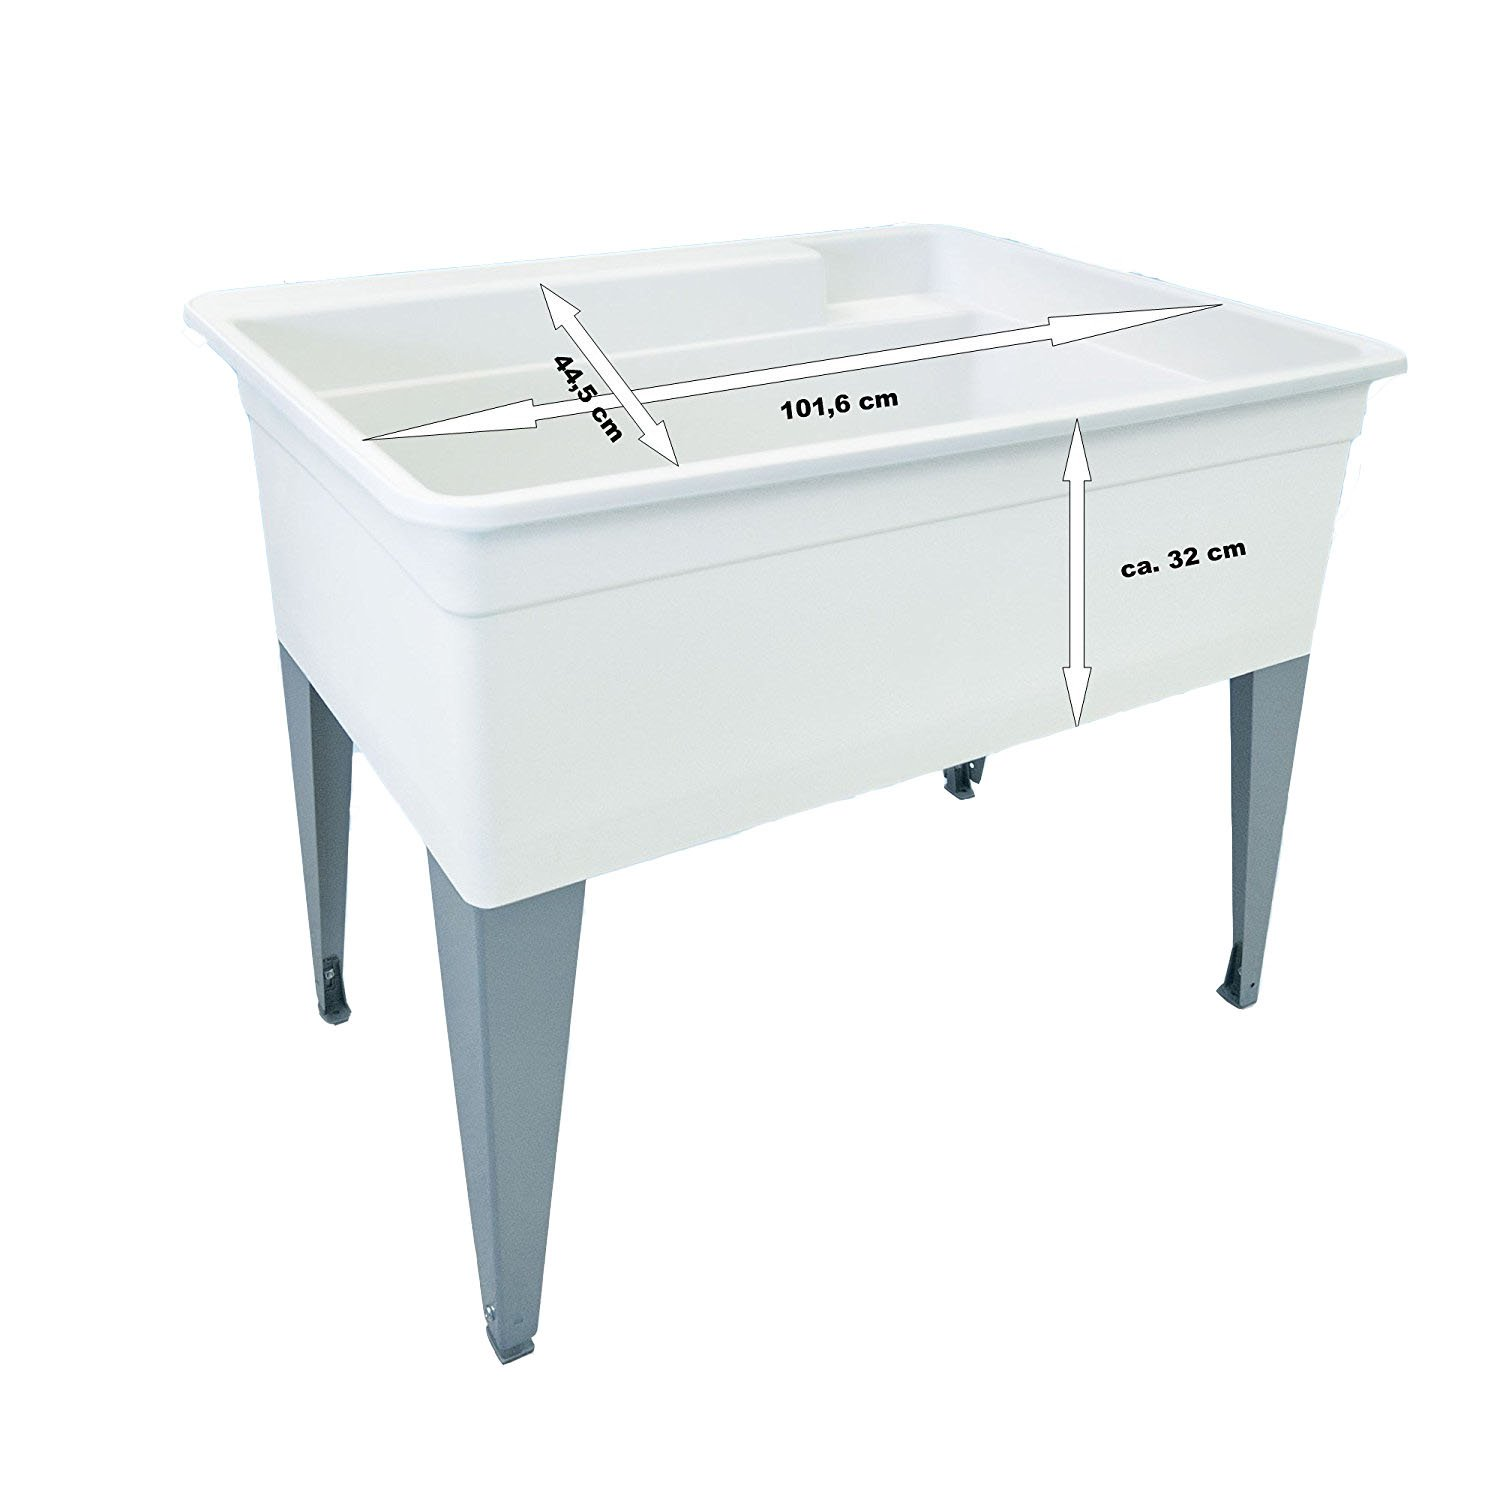 "Mustee    28CF Big Tub, 24"" x 40"", White"